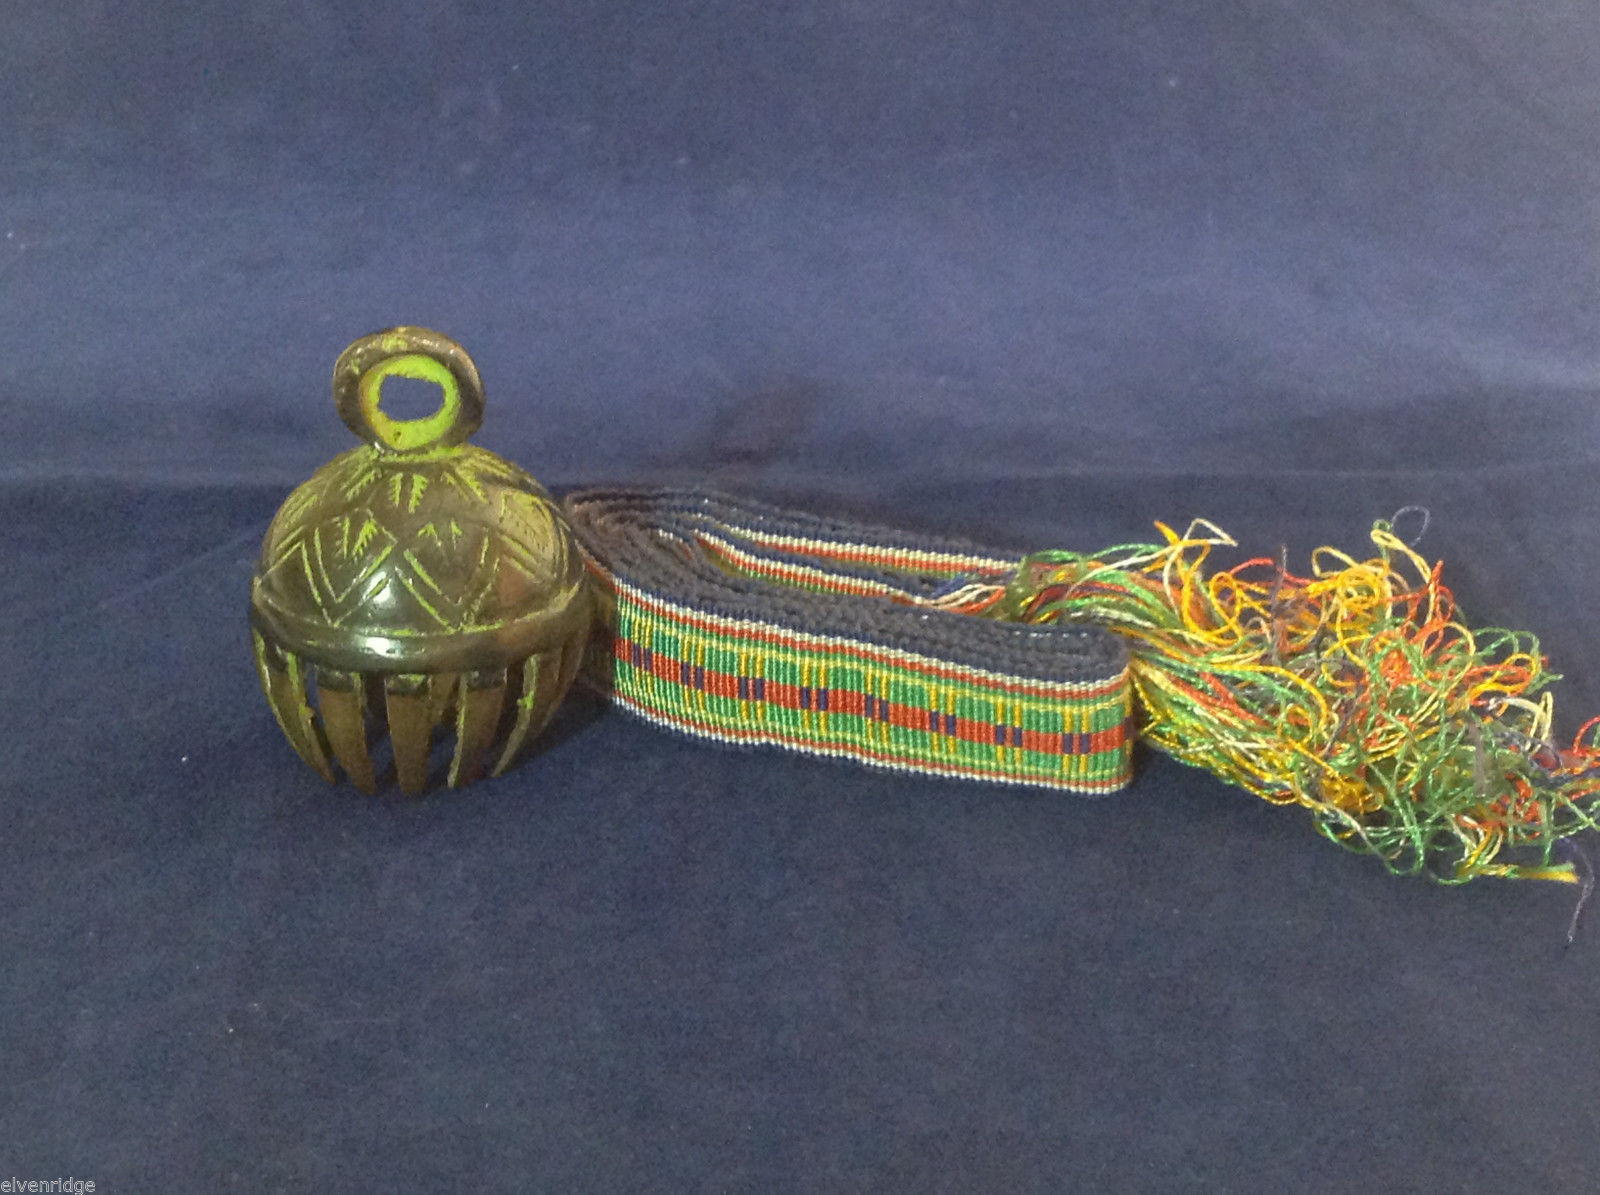 "Small Ornate Tibetan Cowbell Cow Bell w/ Colorful Hand-Woven Strap 2.5"" x 6"" #1"